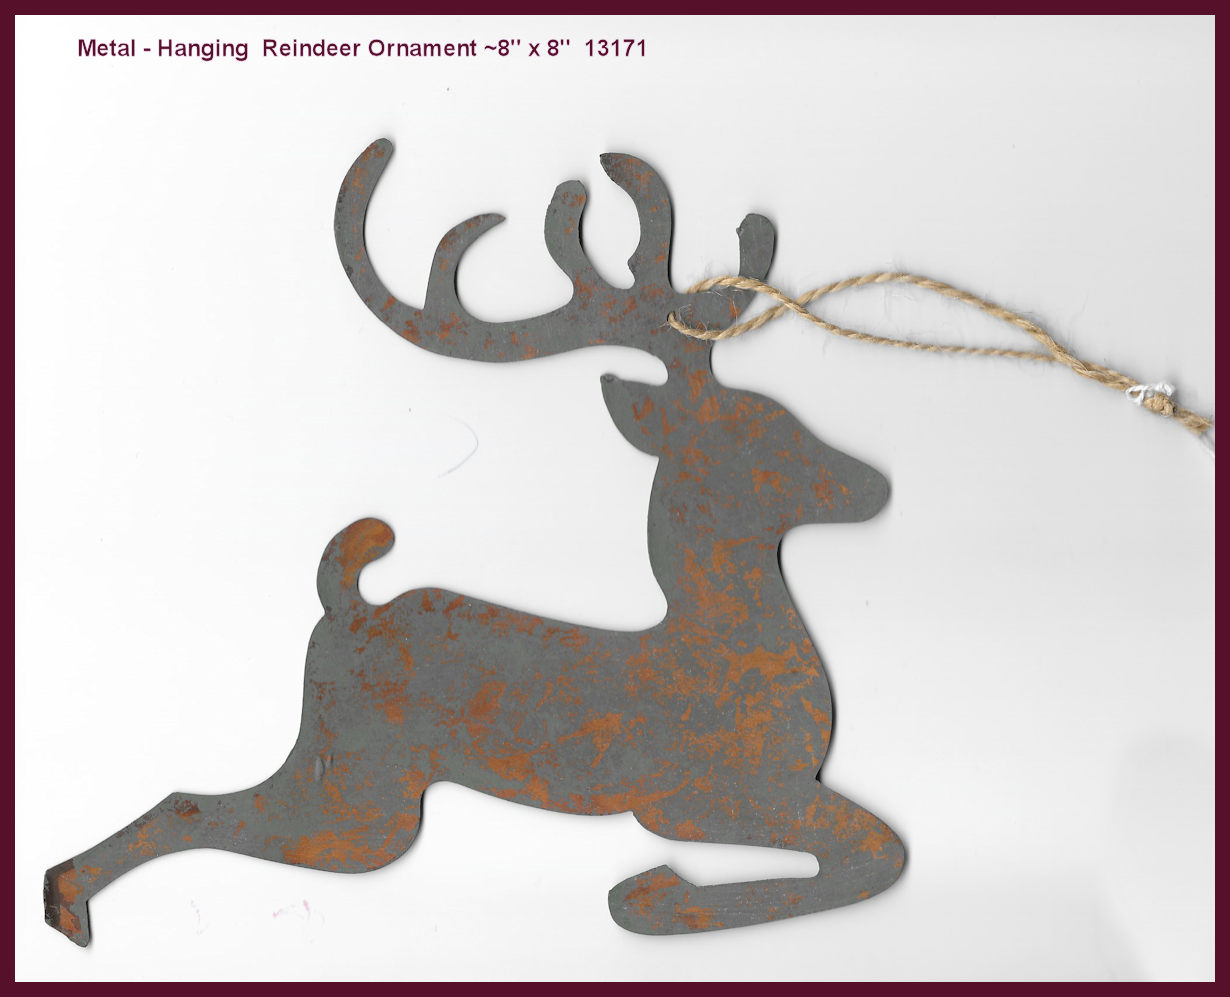 metal-reindeer-ornament-8-x-8-13171-sm.jpg